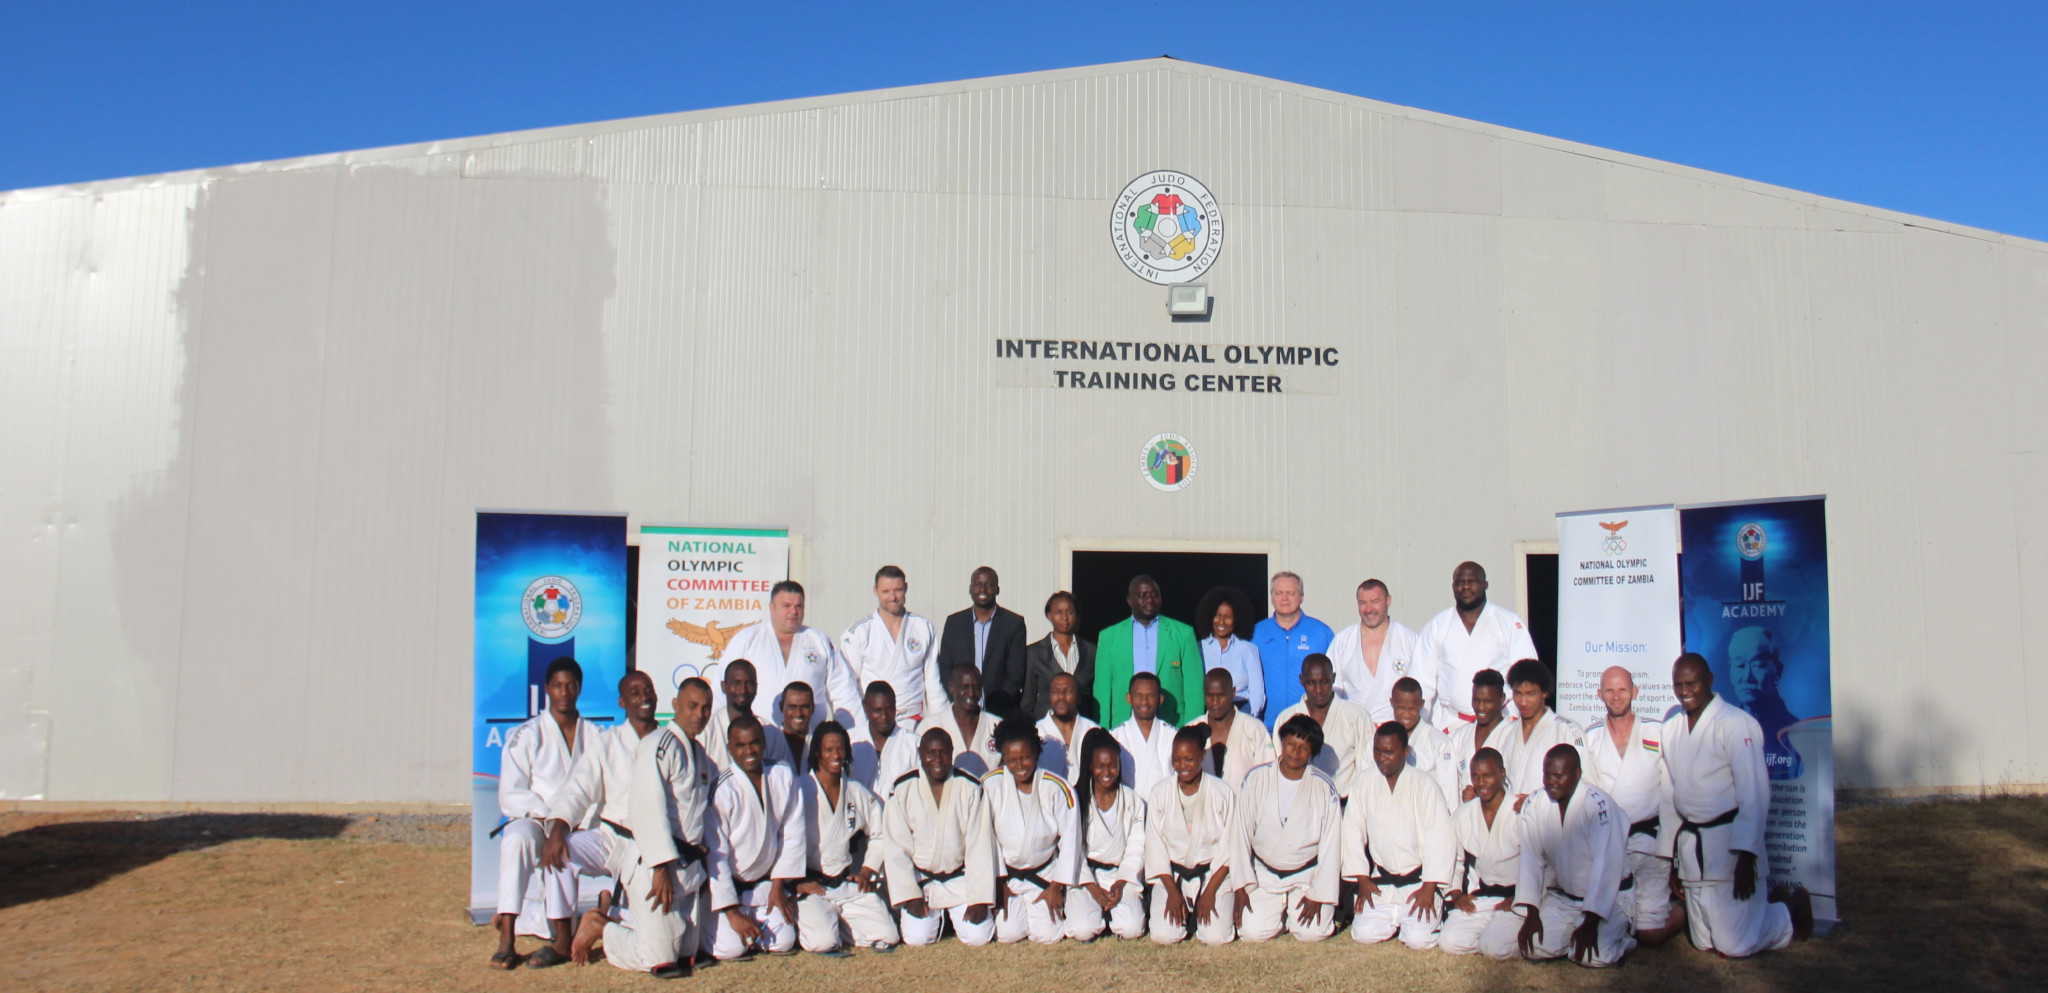 Coaches and experts line up at the Olympic Youth Development Centre in Lusaka during the IJF Academy Level 1 practical training course held in conjunction with the National Olympic Committee of Zambia ©NOCZ